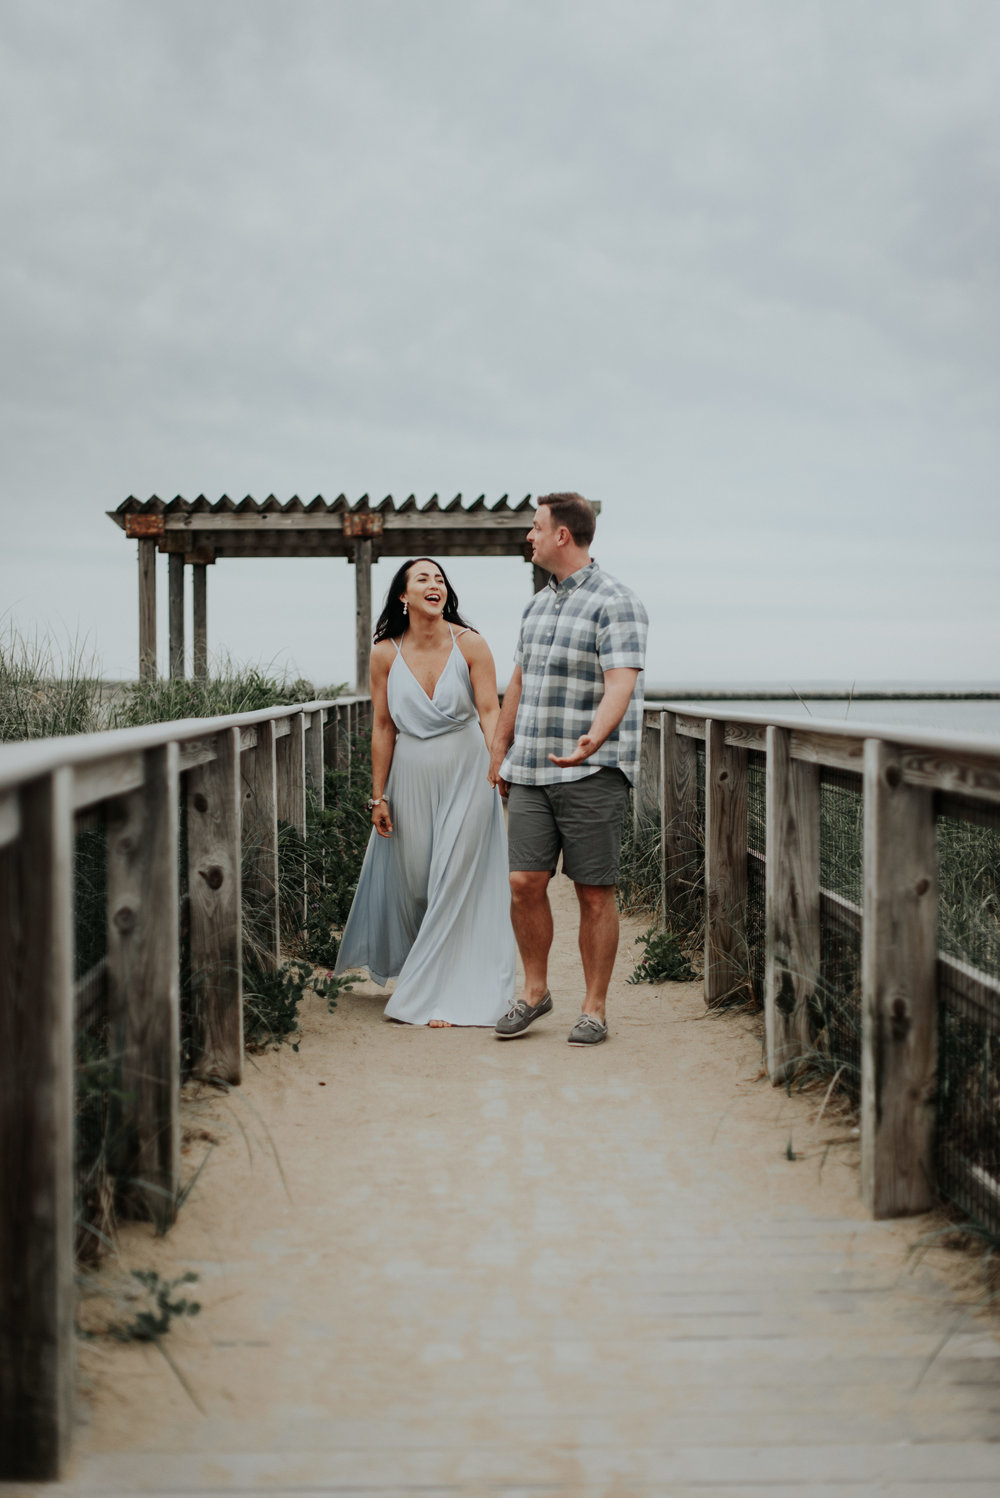 Megan & John-Massachusetts-Plum Island Newburyport Engagement-Beach Couples Session-Photographer-00117.jpg